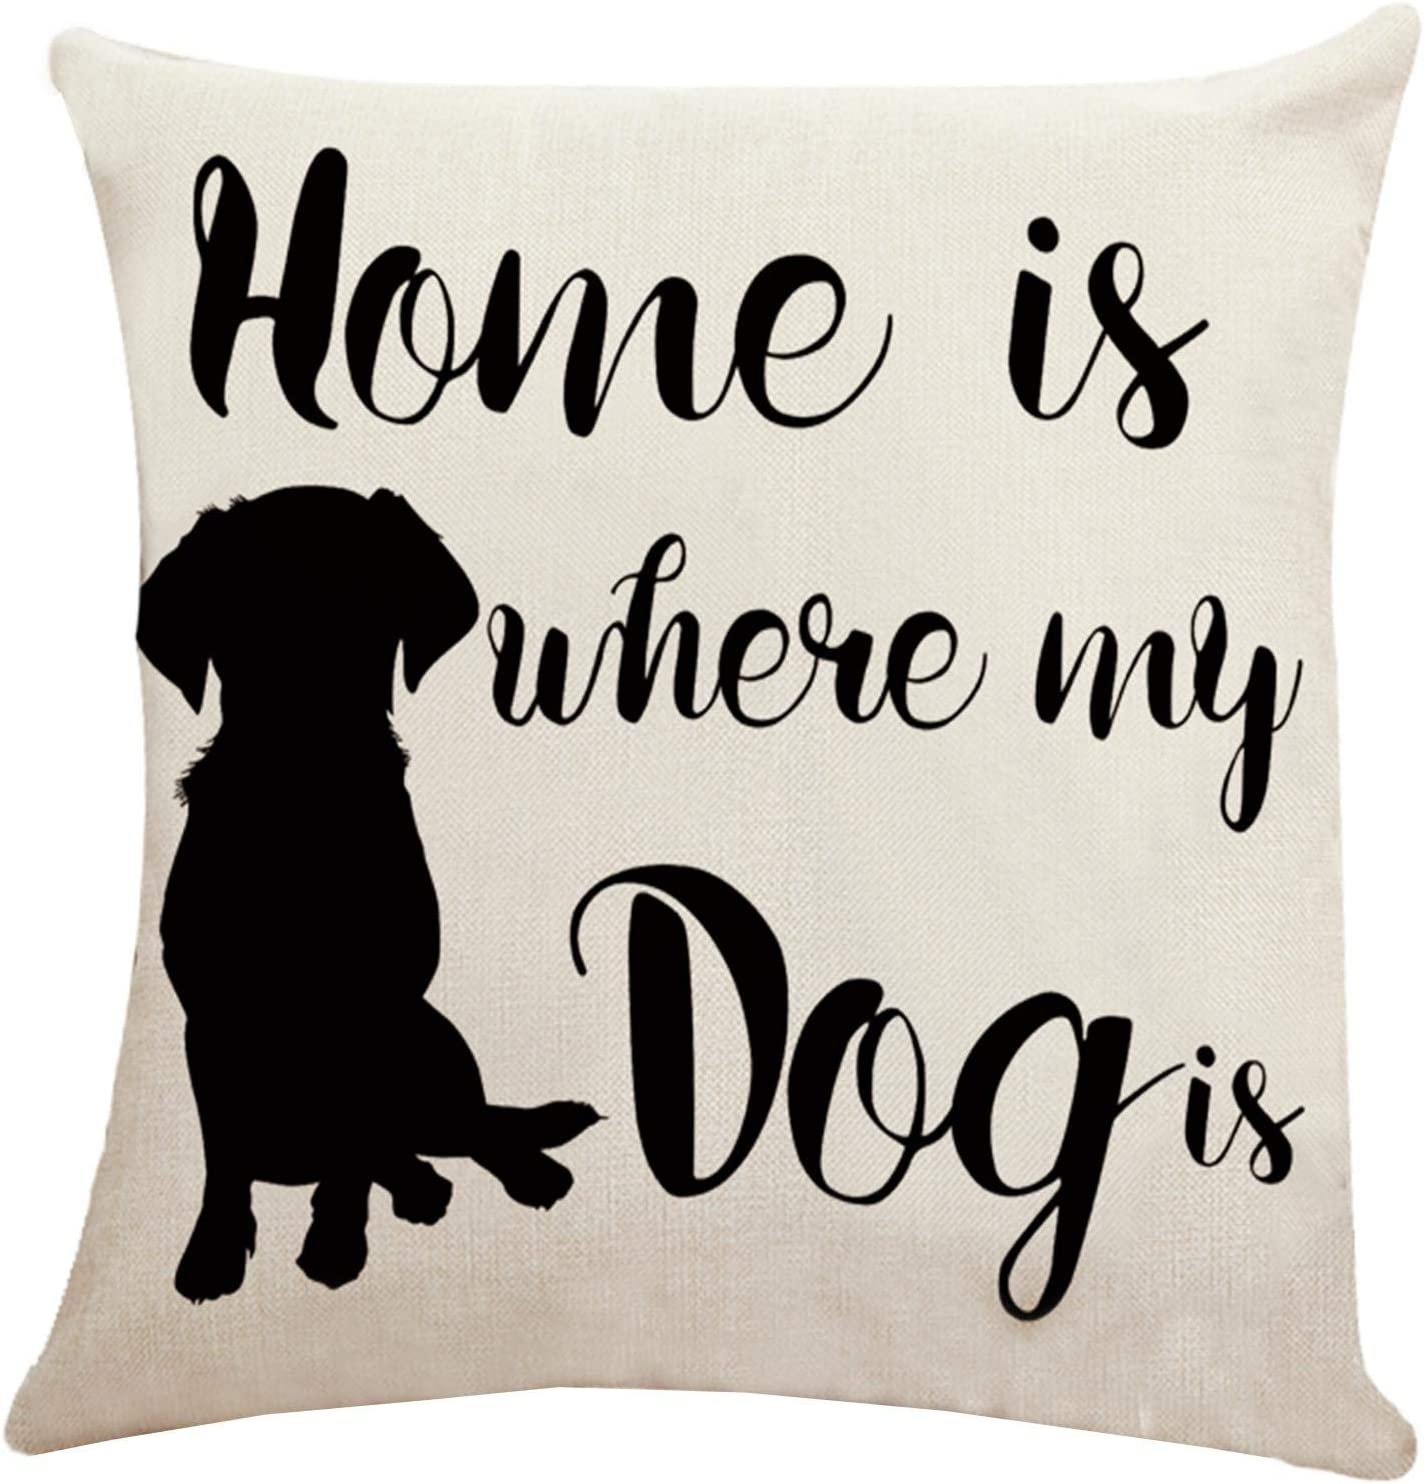 Best Gifts Throw pillow covers for Dog Lover, YuanDe Funny Sweet Warm Sayings Home is Where My Dog is Double Side Cotton Linen Polyester Pillowcases 18x18 inch, Cute Cushion Covers for Room Home Decor